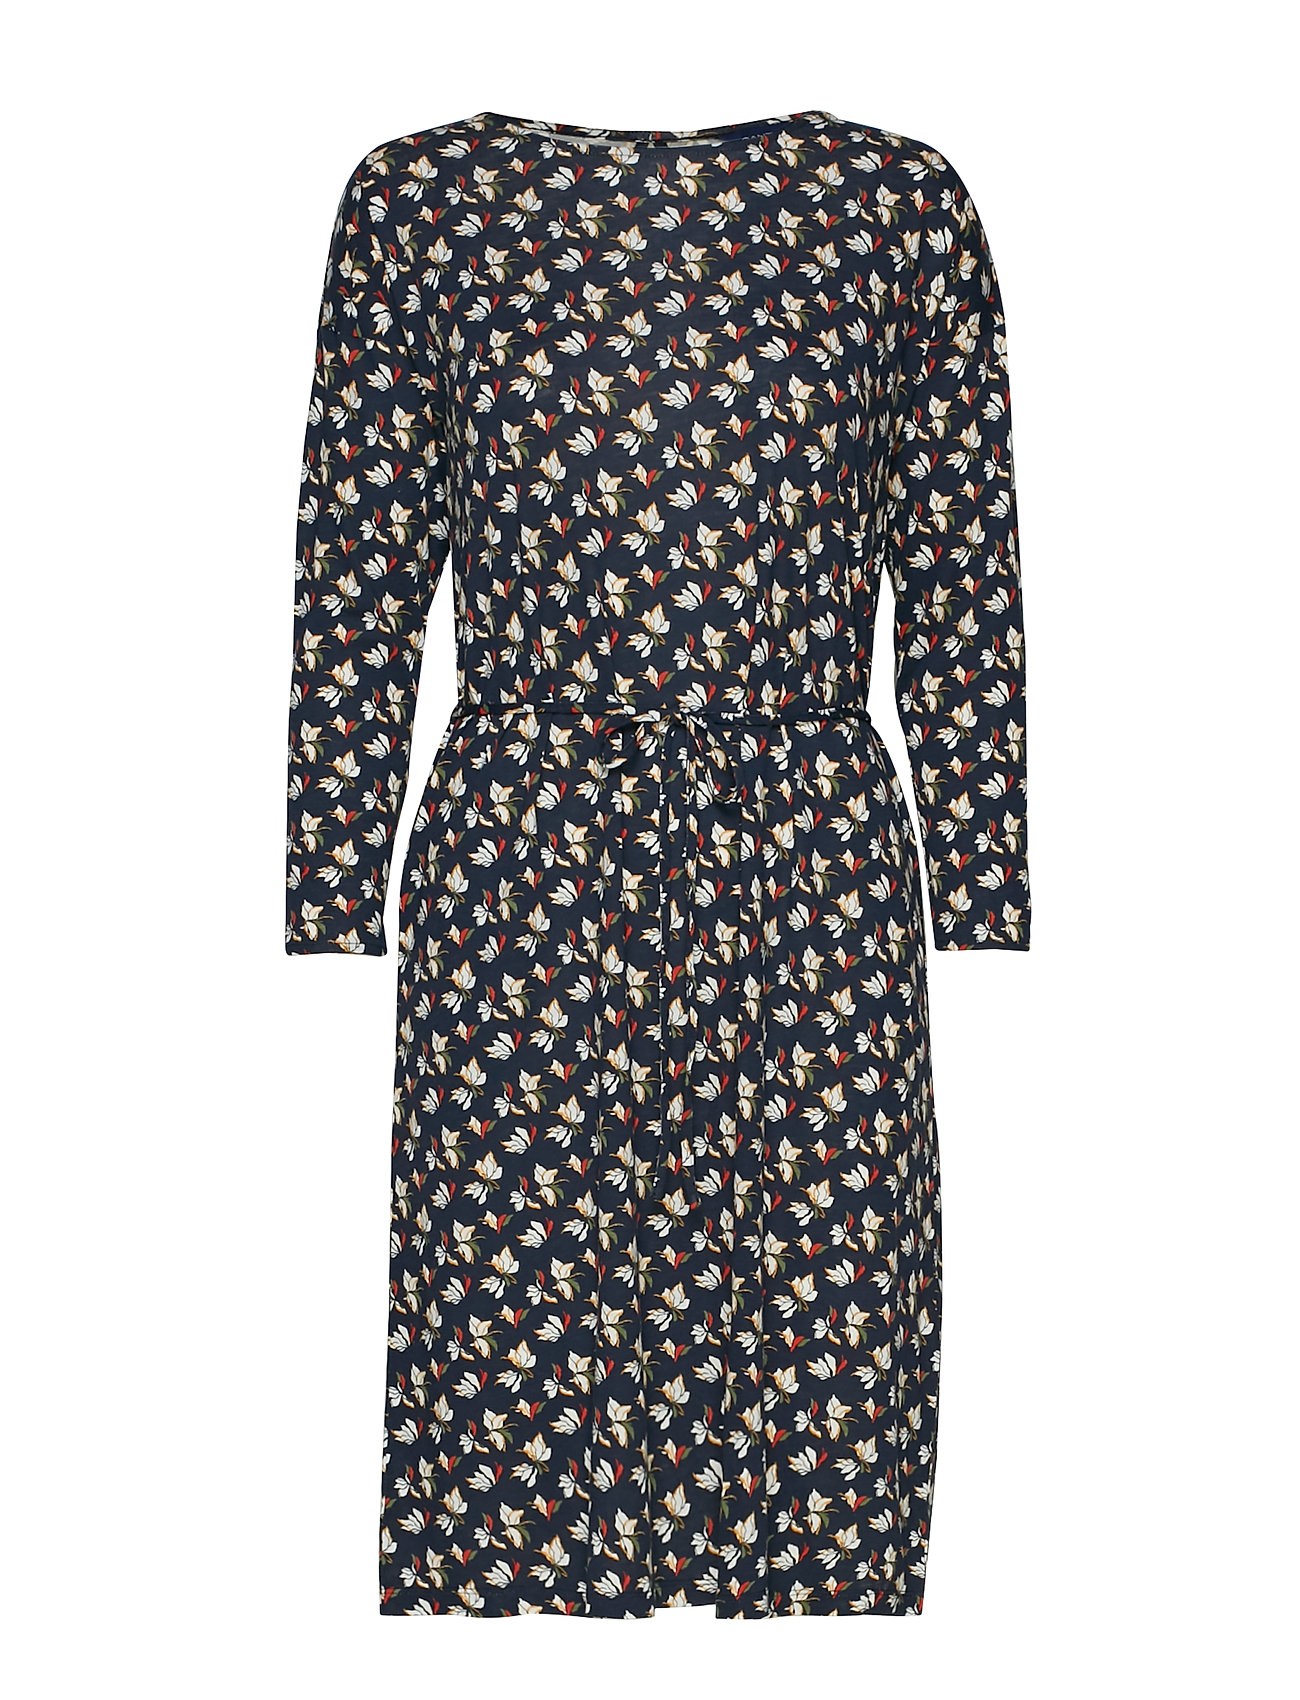 GANT D1. AOP JERSEY DRESS - EVENING BLUE